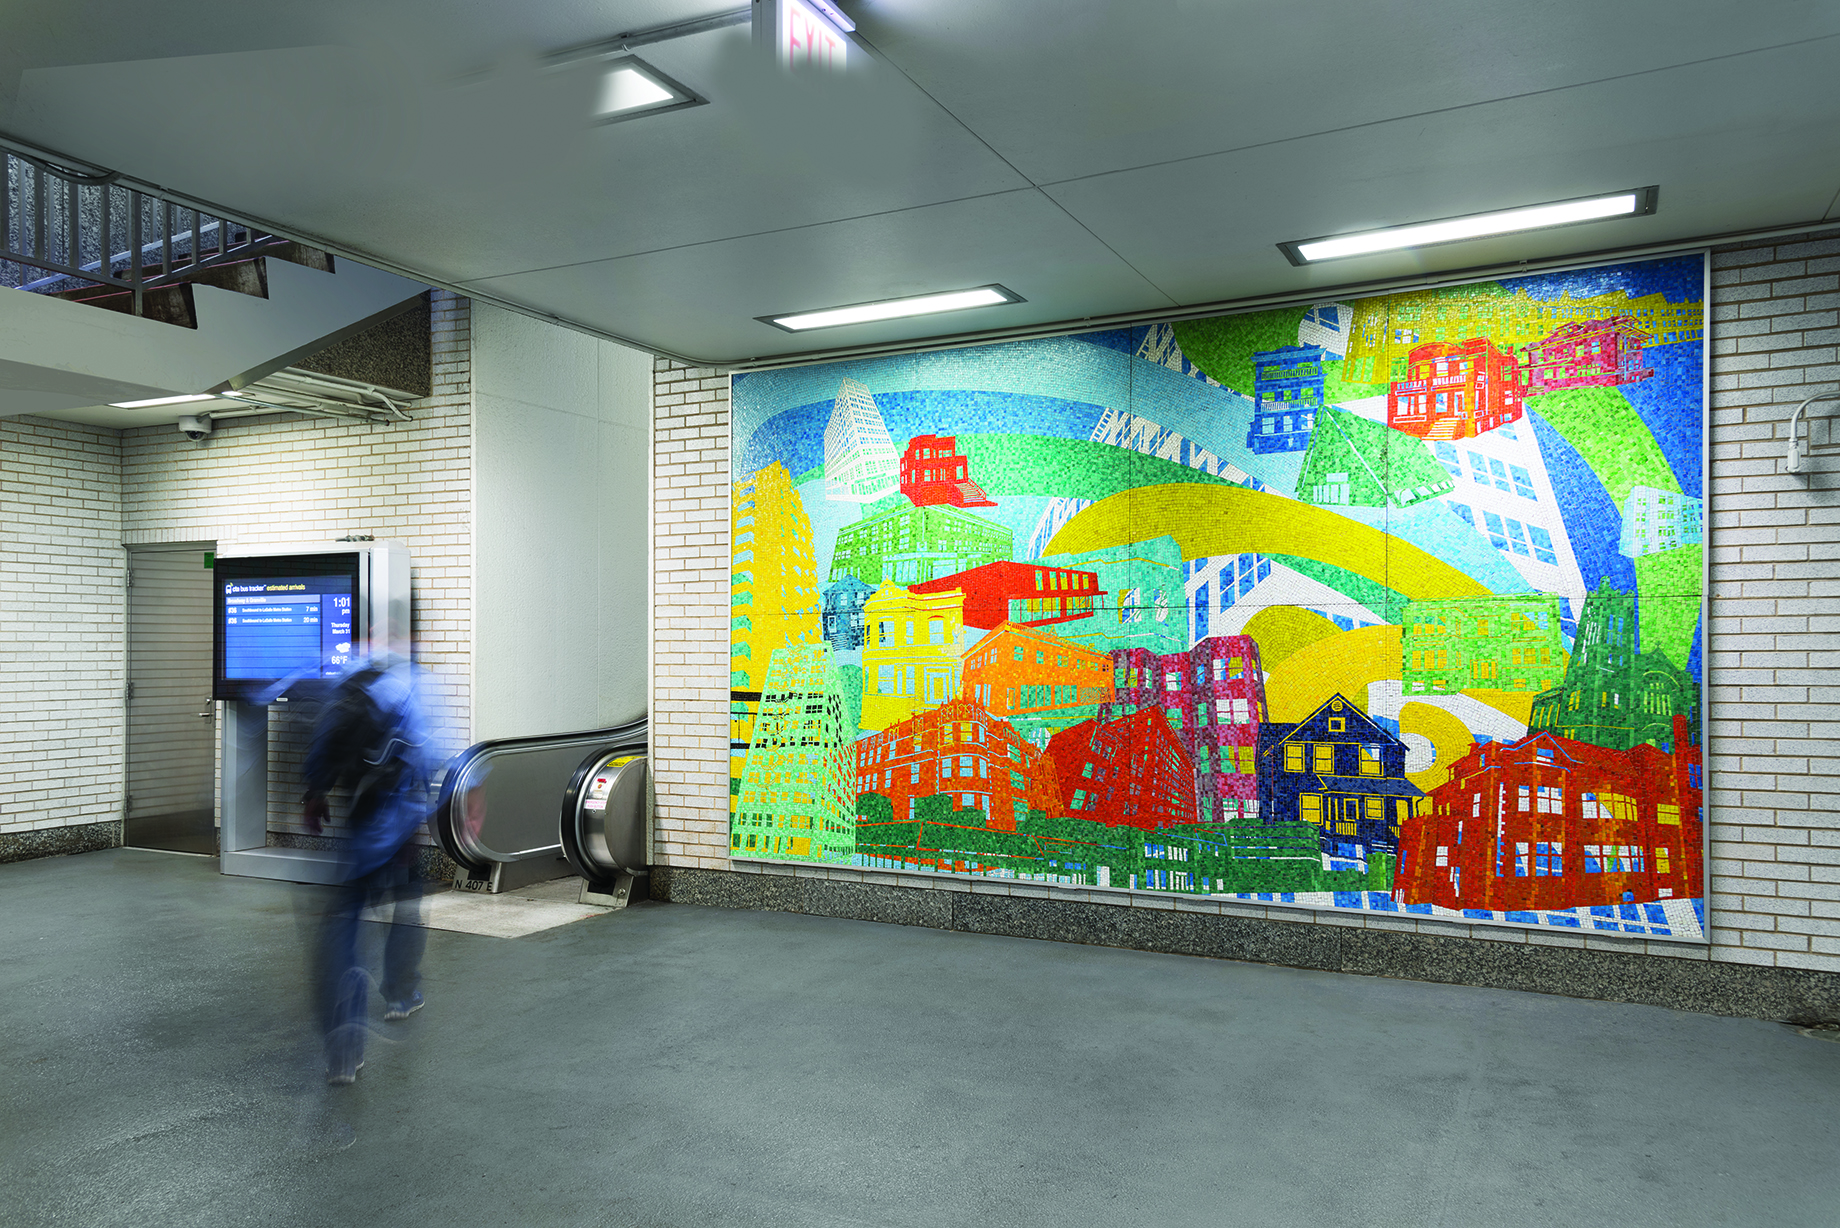 Kyungmi Shin's Granville mosaic was completed in 2014, depicting the impressions of buildings surrounding the station.